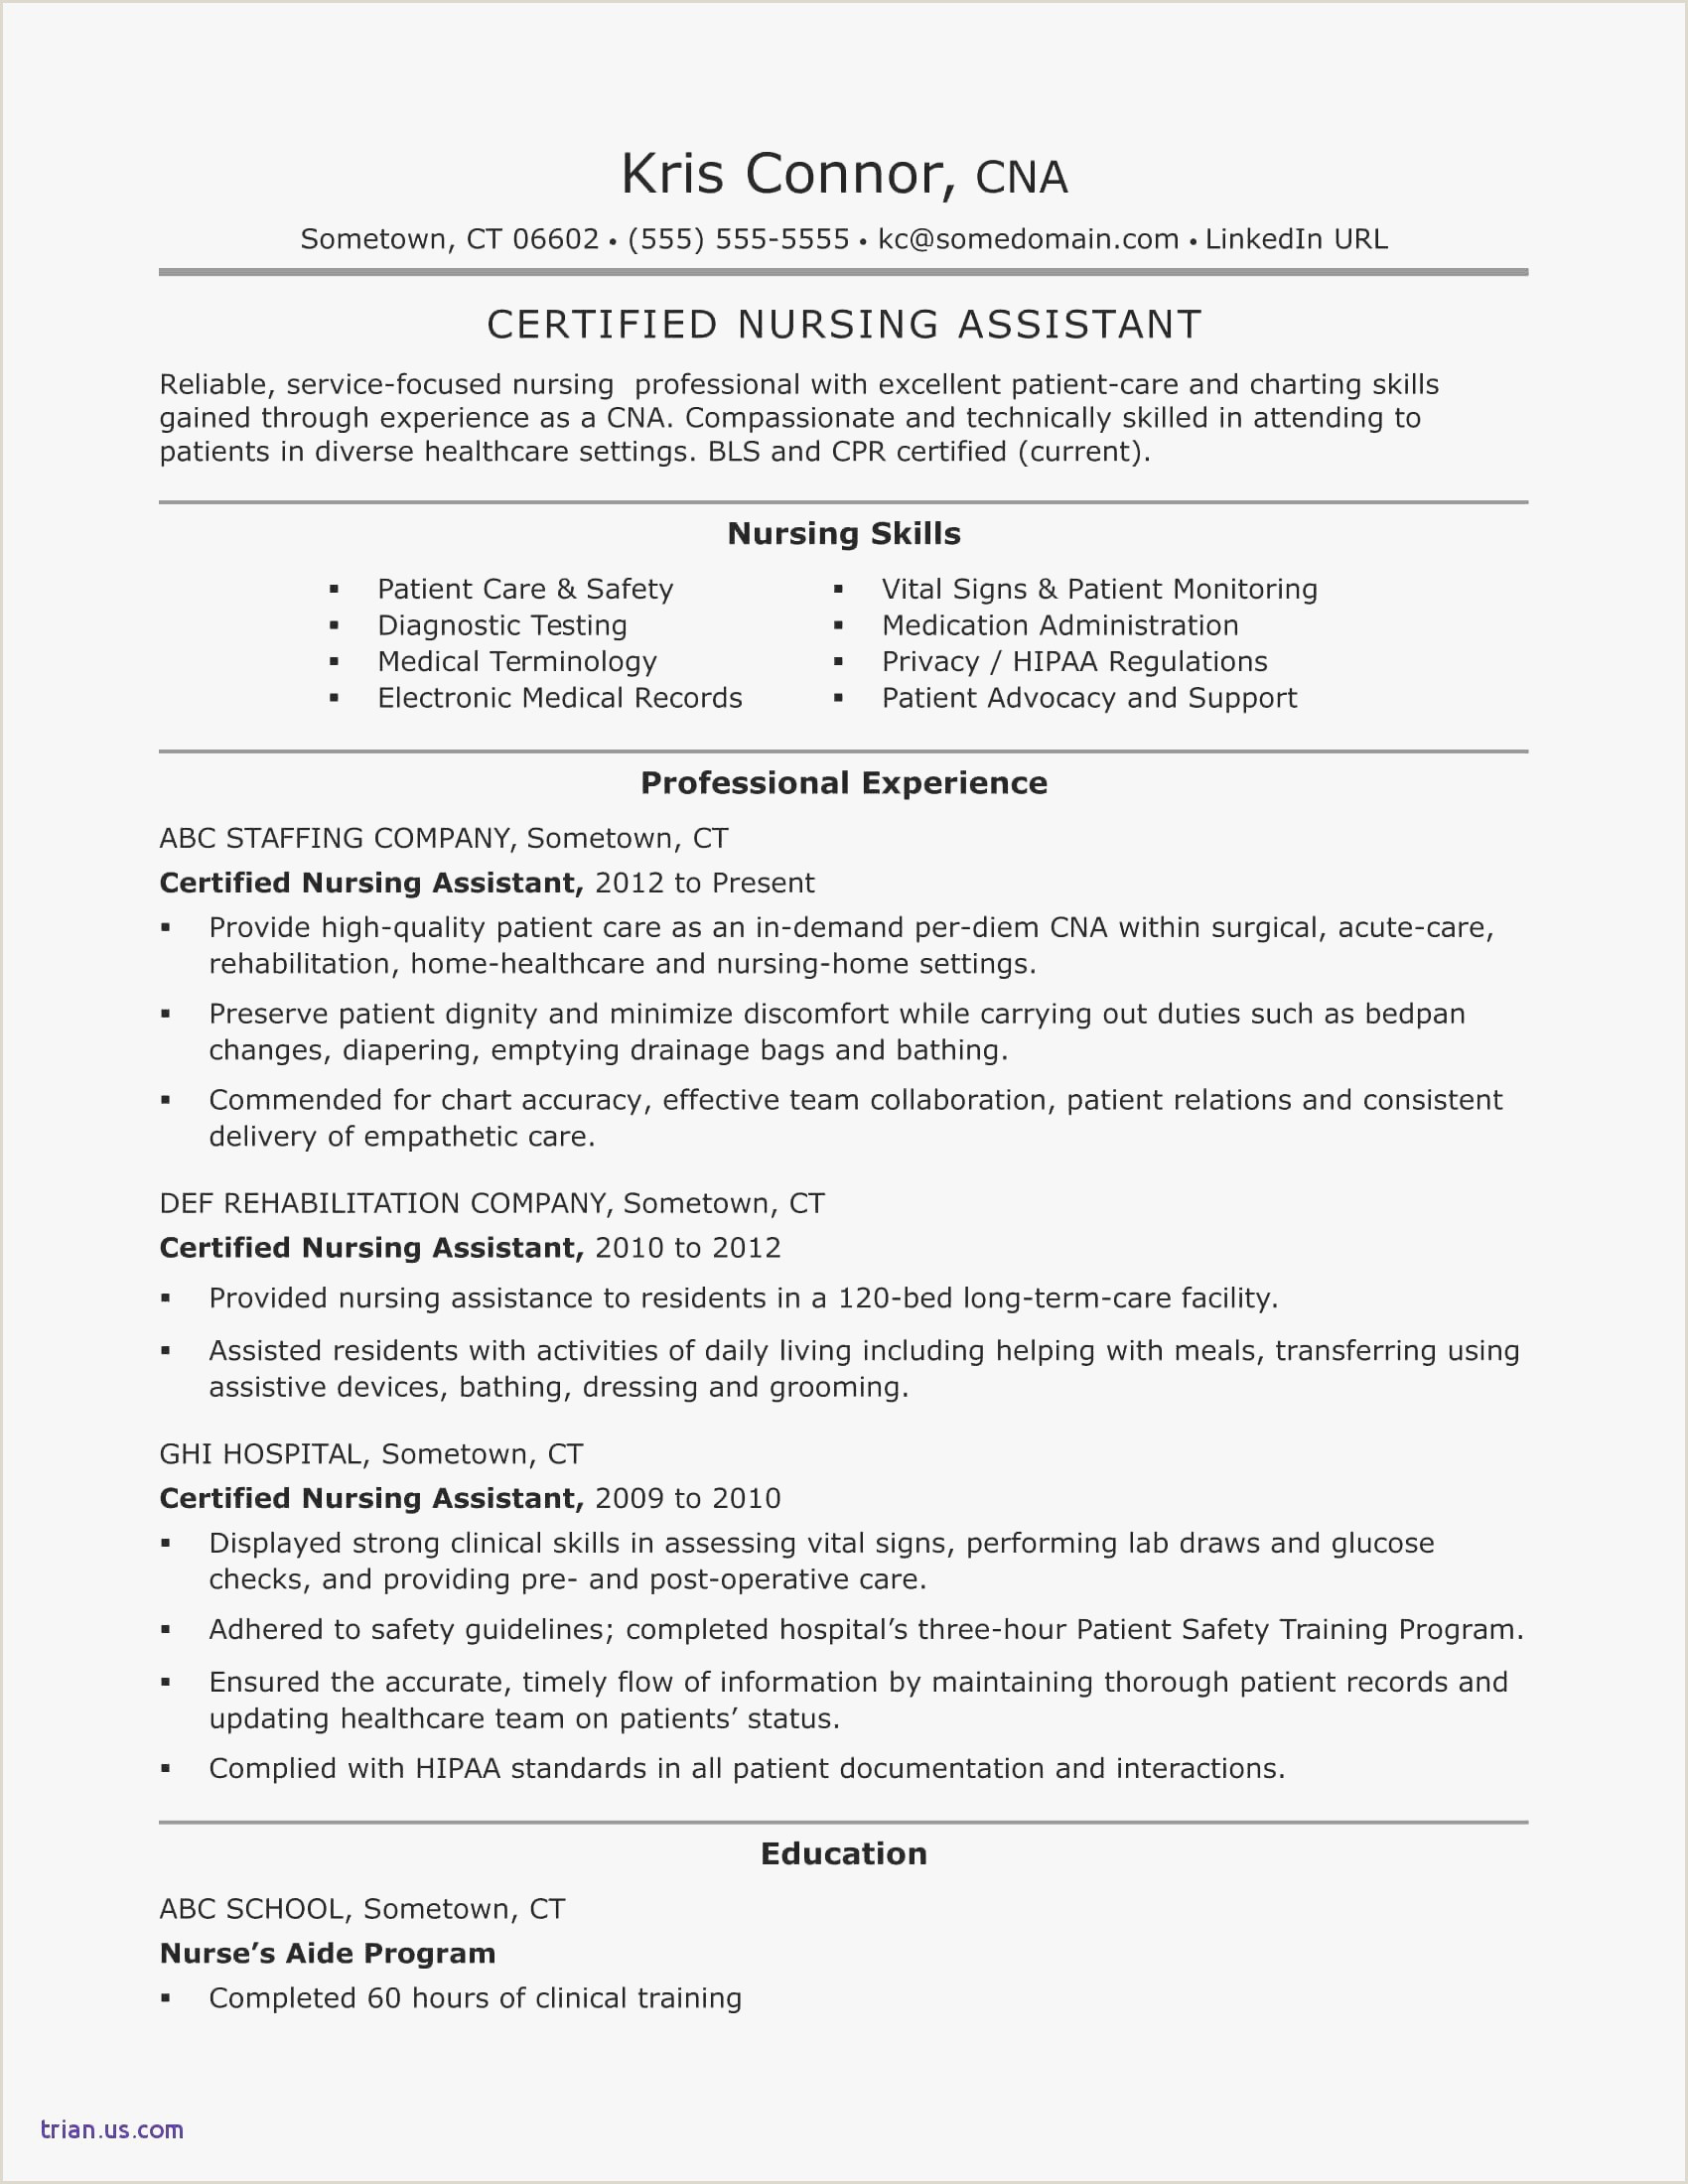 Lab Skills On Resume Unique What is My Linkedin Url